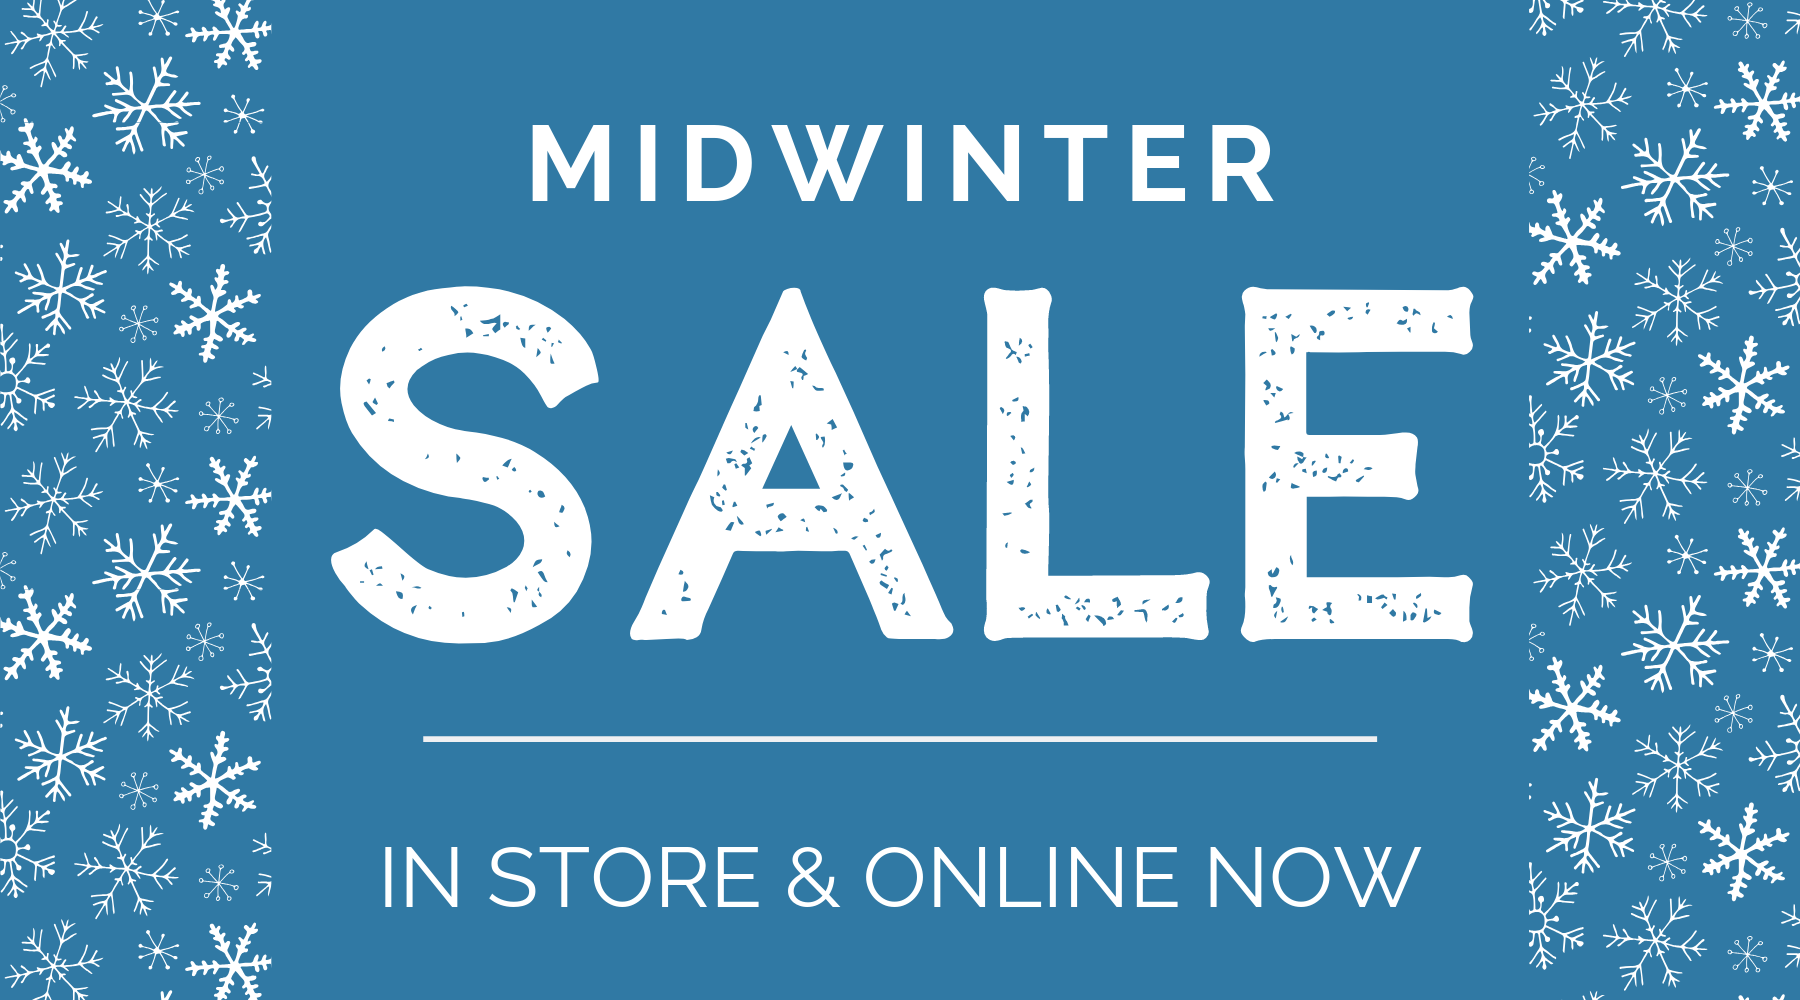 Midwinter Sale - Rata Jewellery - Dunedin